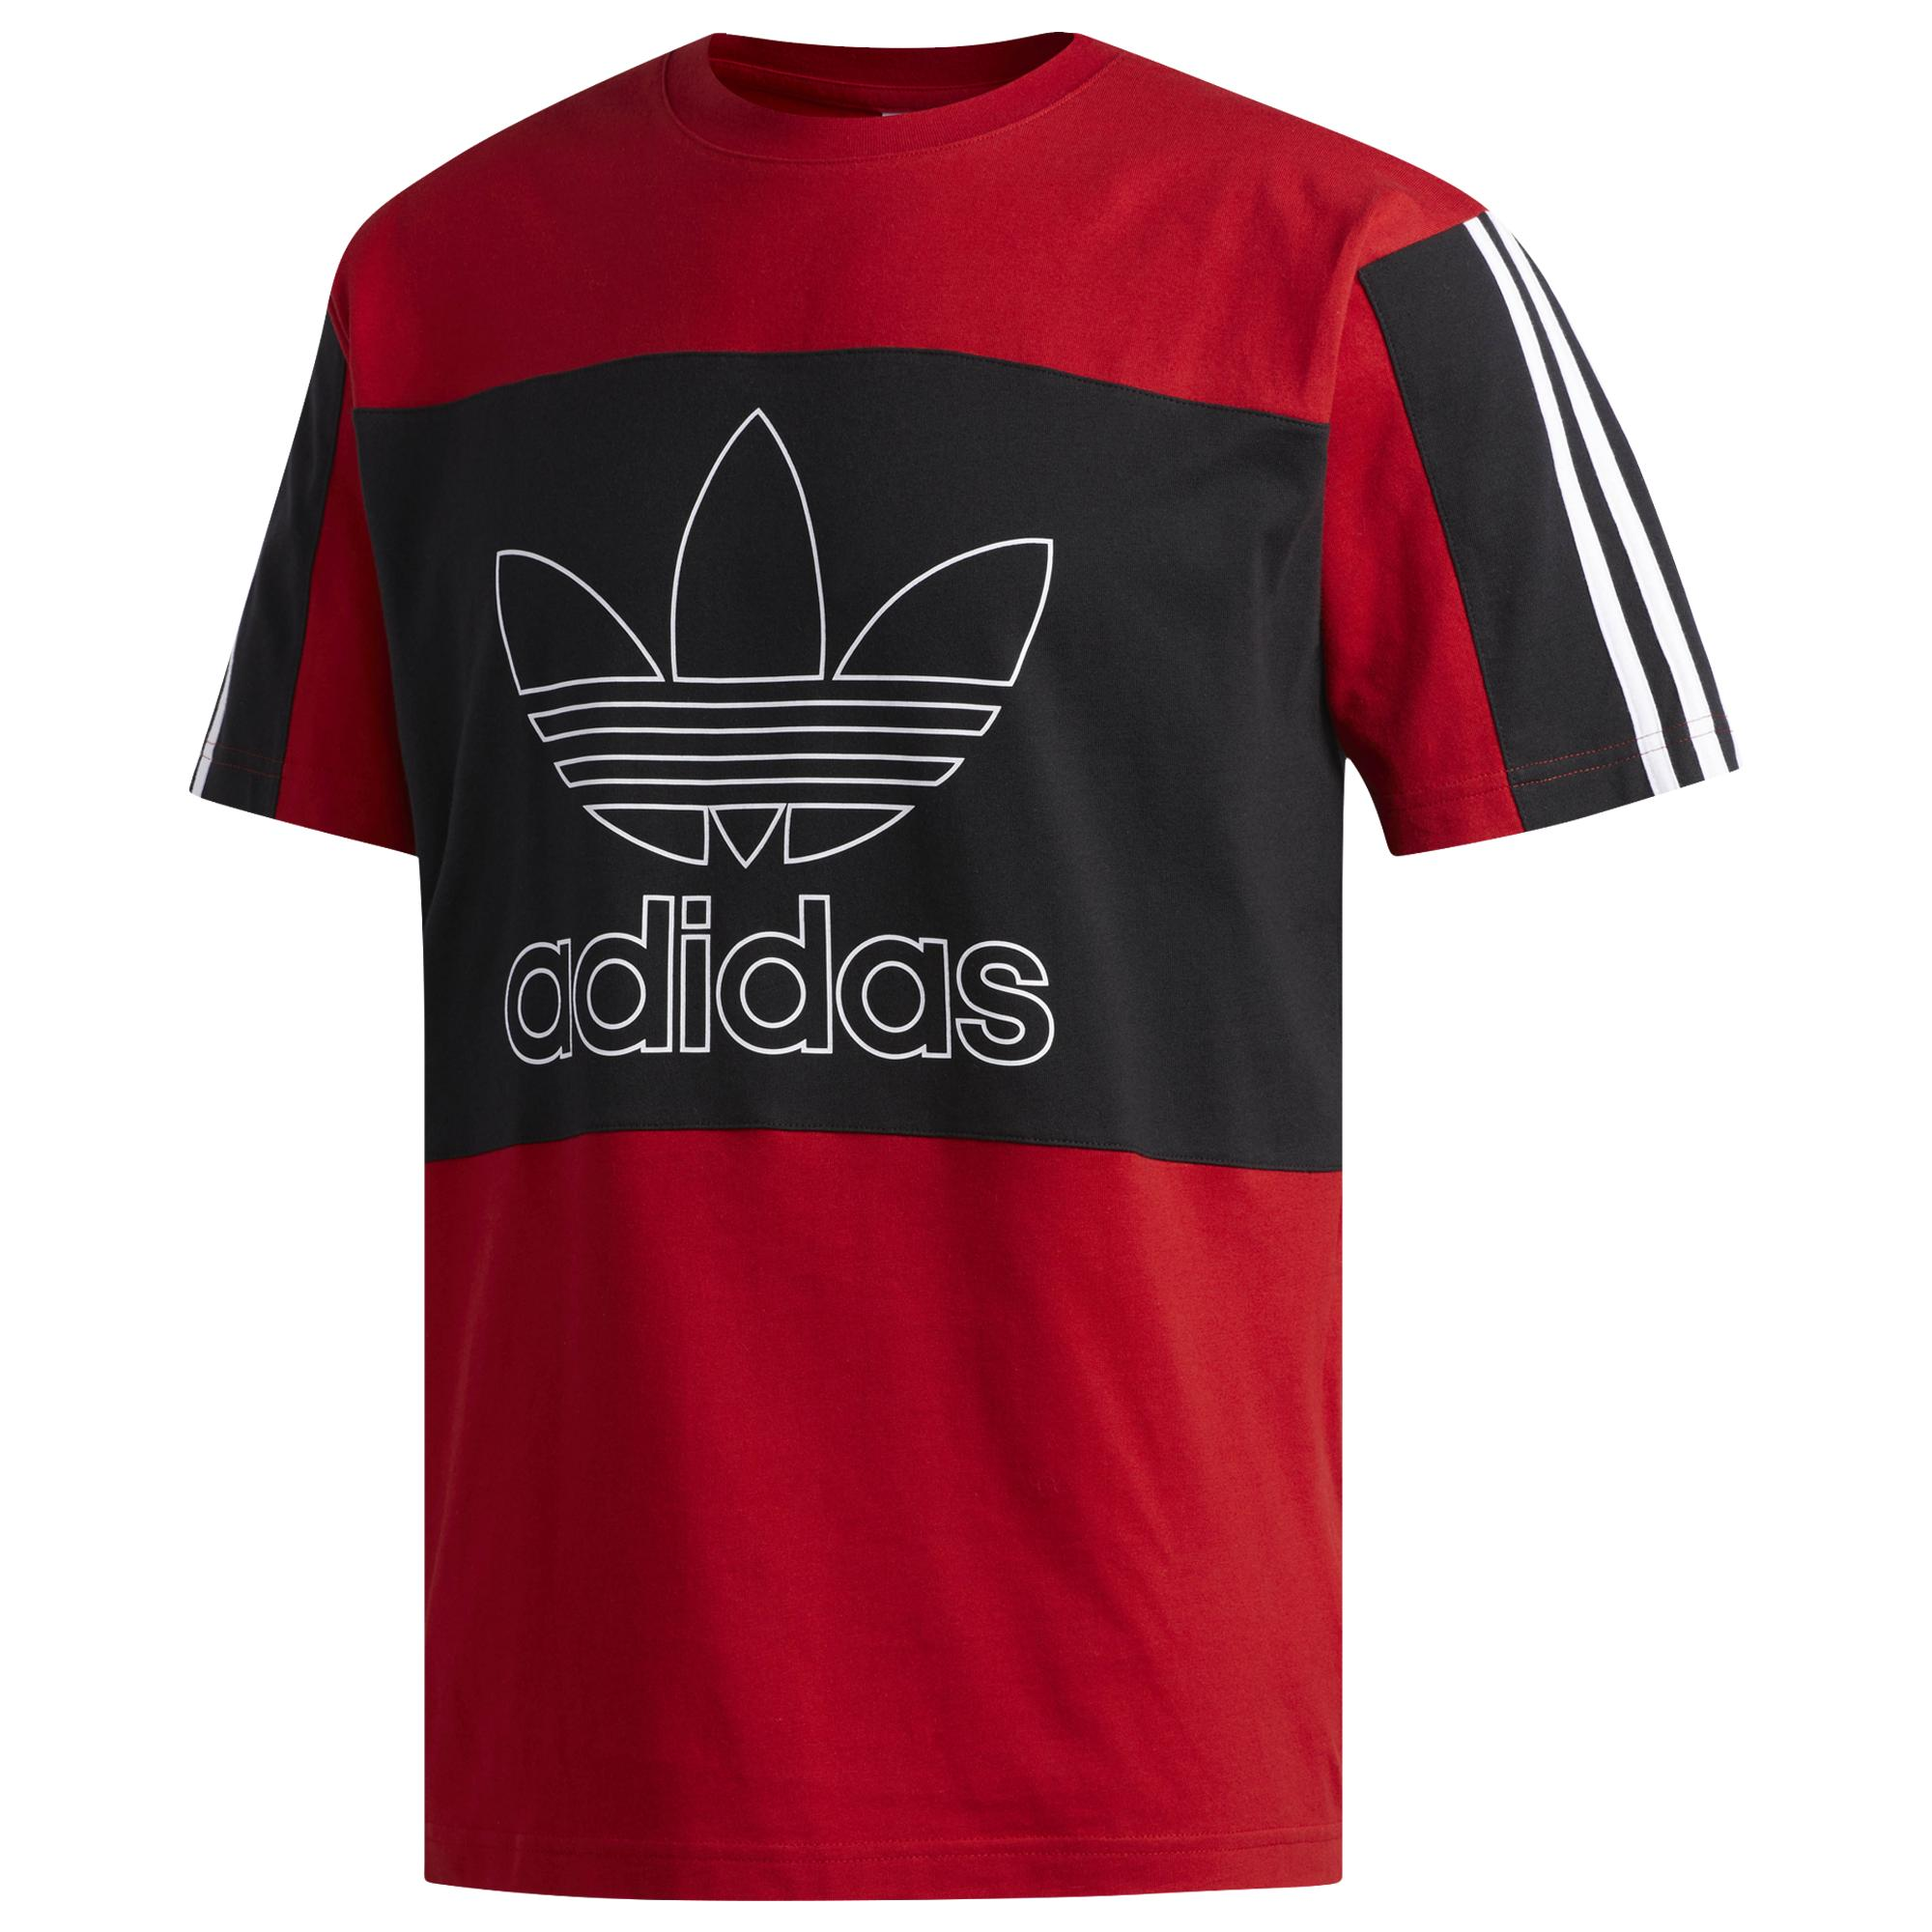 a5234805f Adidas Originals - Red Outline S/s Block T-shirt for Men - Lyst. View  fullscreen